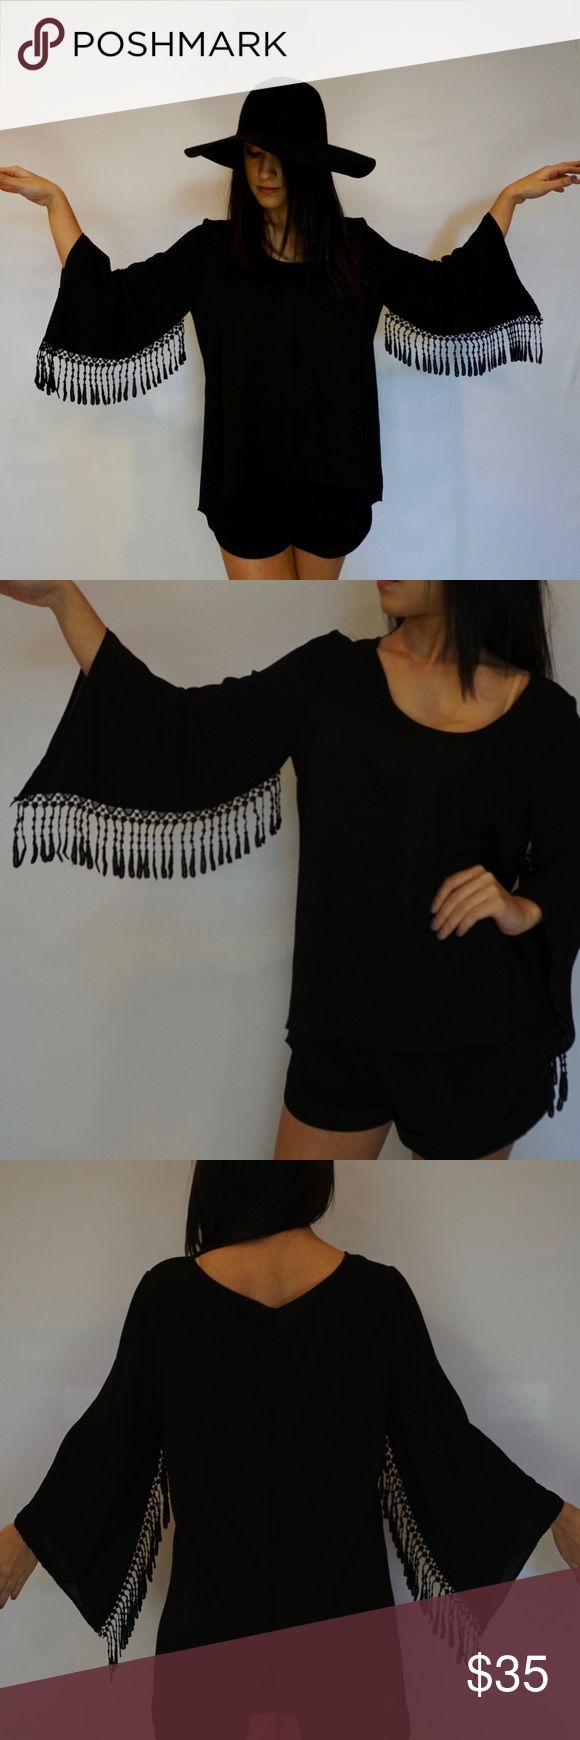 Fringe blouse Long sleeve blouse.  Fringe blouse.  100% polyester.  Great condition.  No brand mentioned. Tops Blouses